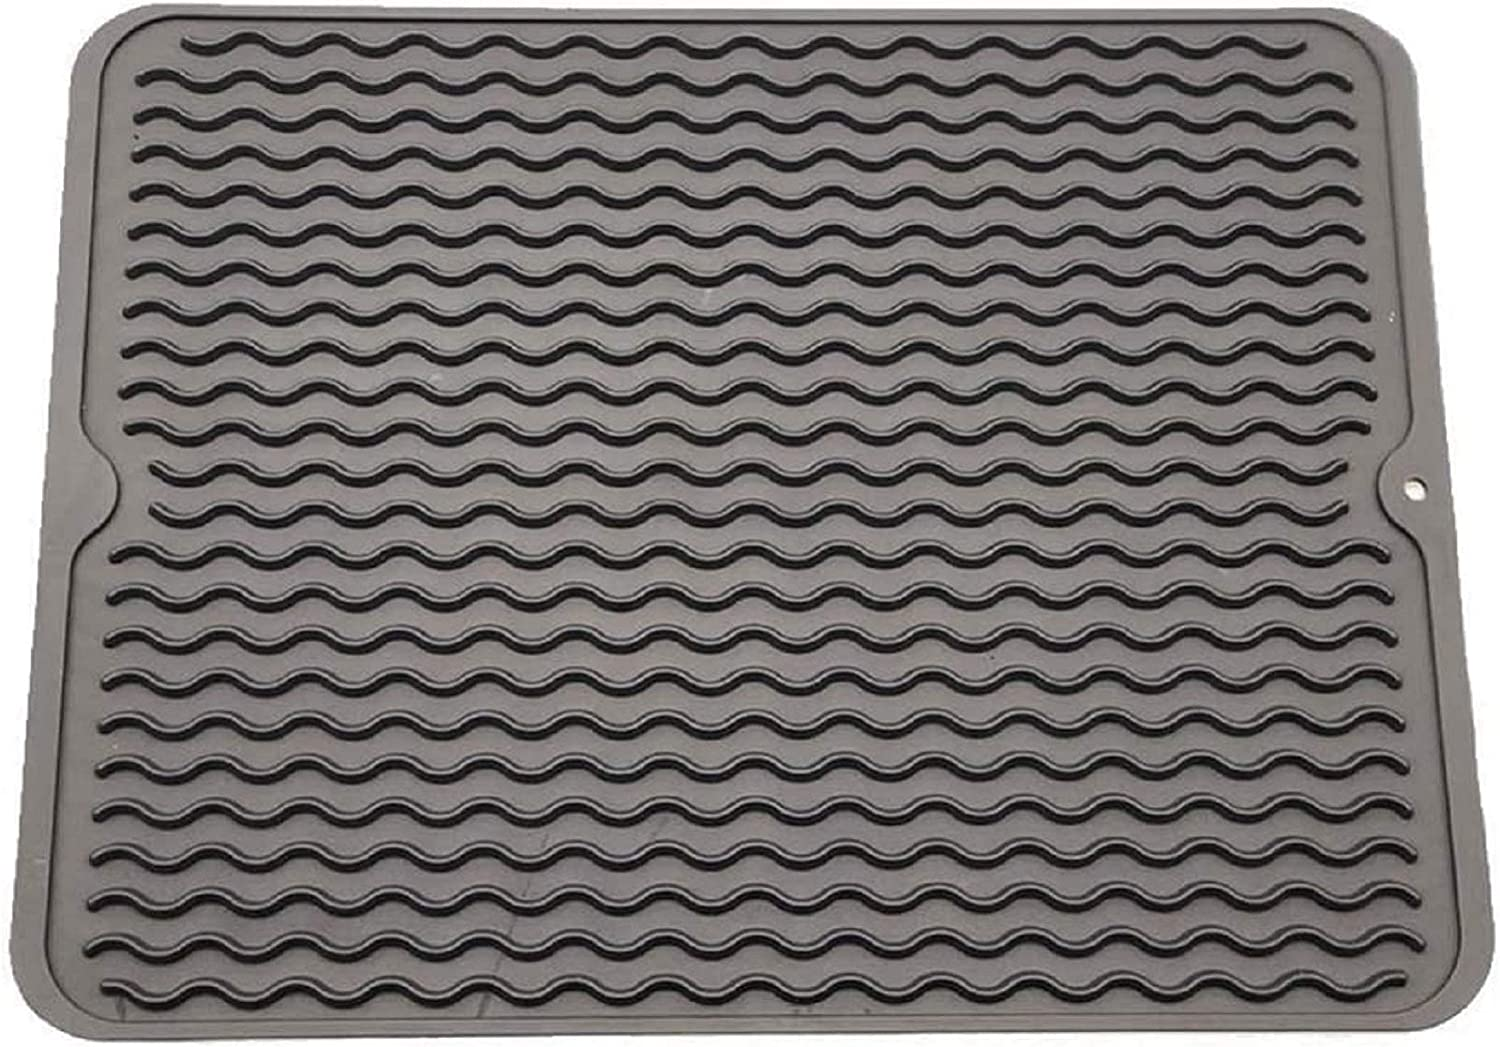 Silicone Dish Drying Mats for Kitchen Counter, Heat Resistant Mat, Tableware Bowl Mat, Non Slip Dish Mats Can be Rolled UP-16'' X 12''